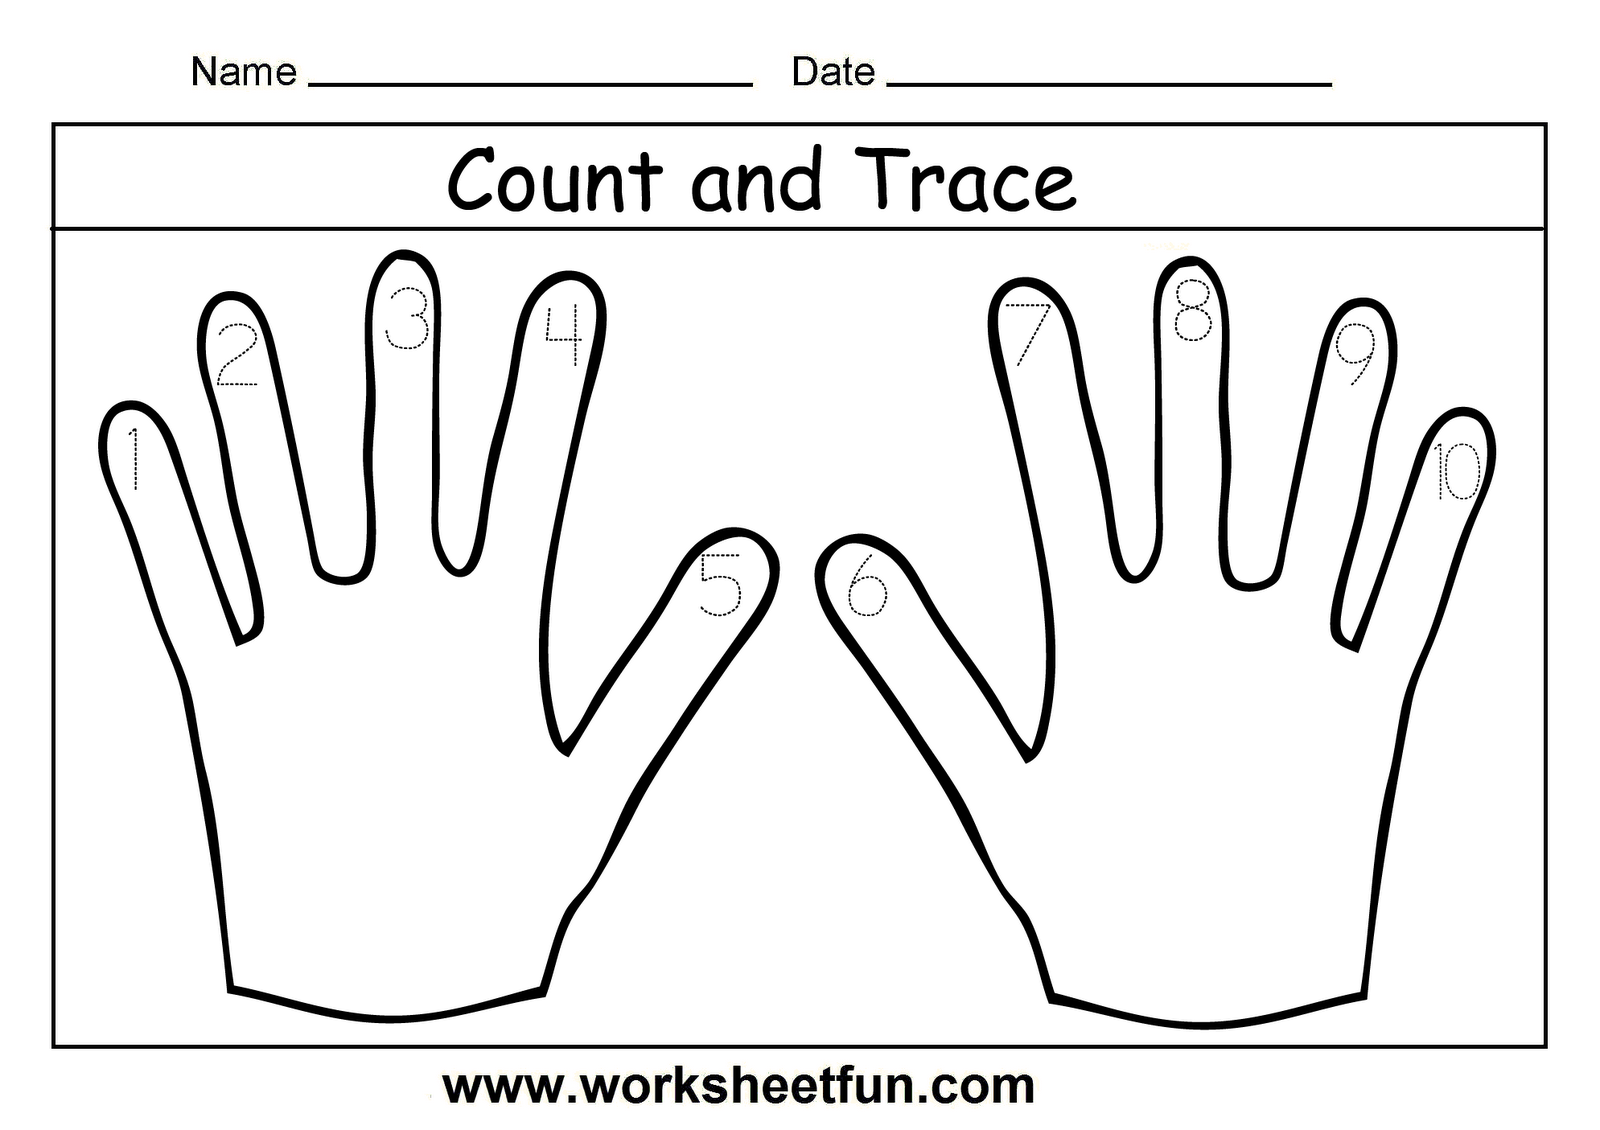 Worksheets Number Tracing Worksheets 1-10 tracing numbers 1 10 worksheets kindergarten shiloh math kindergarten